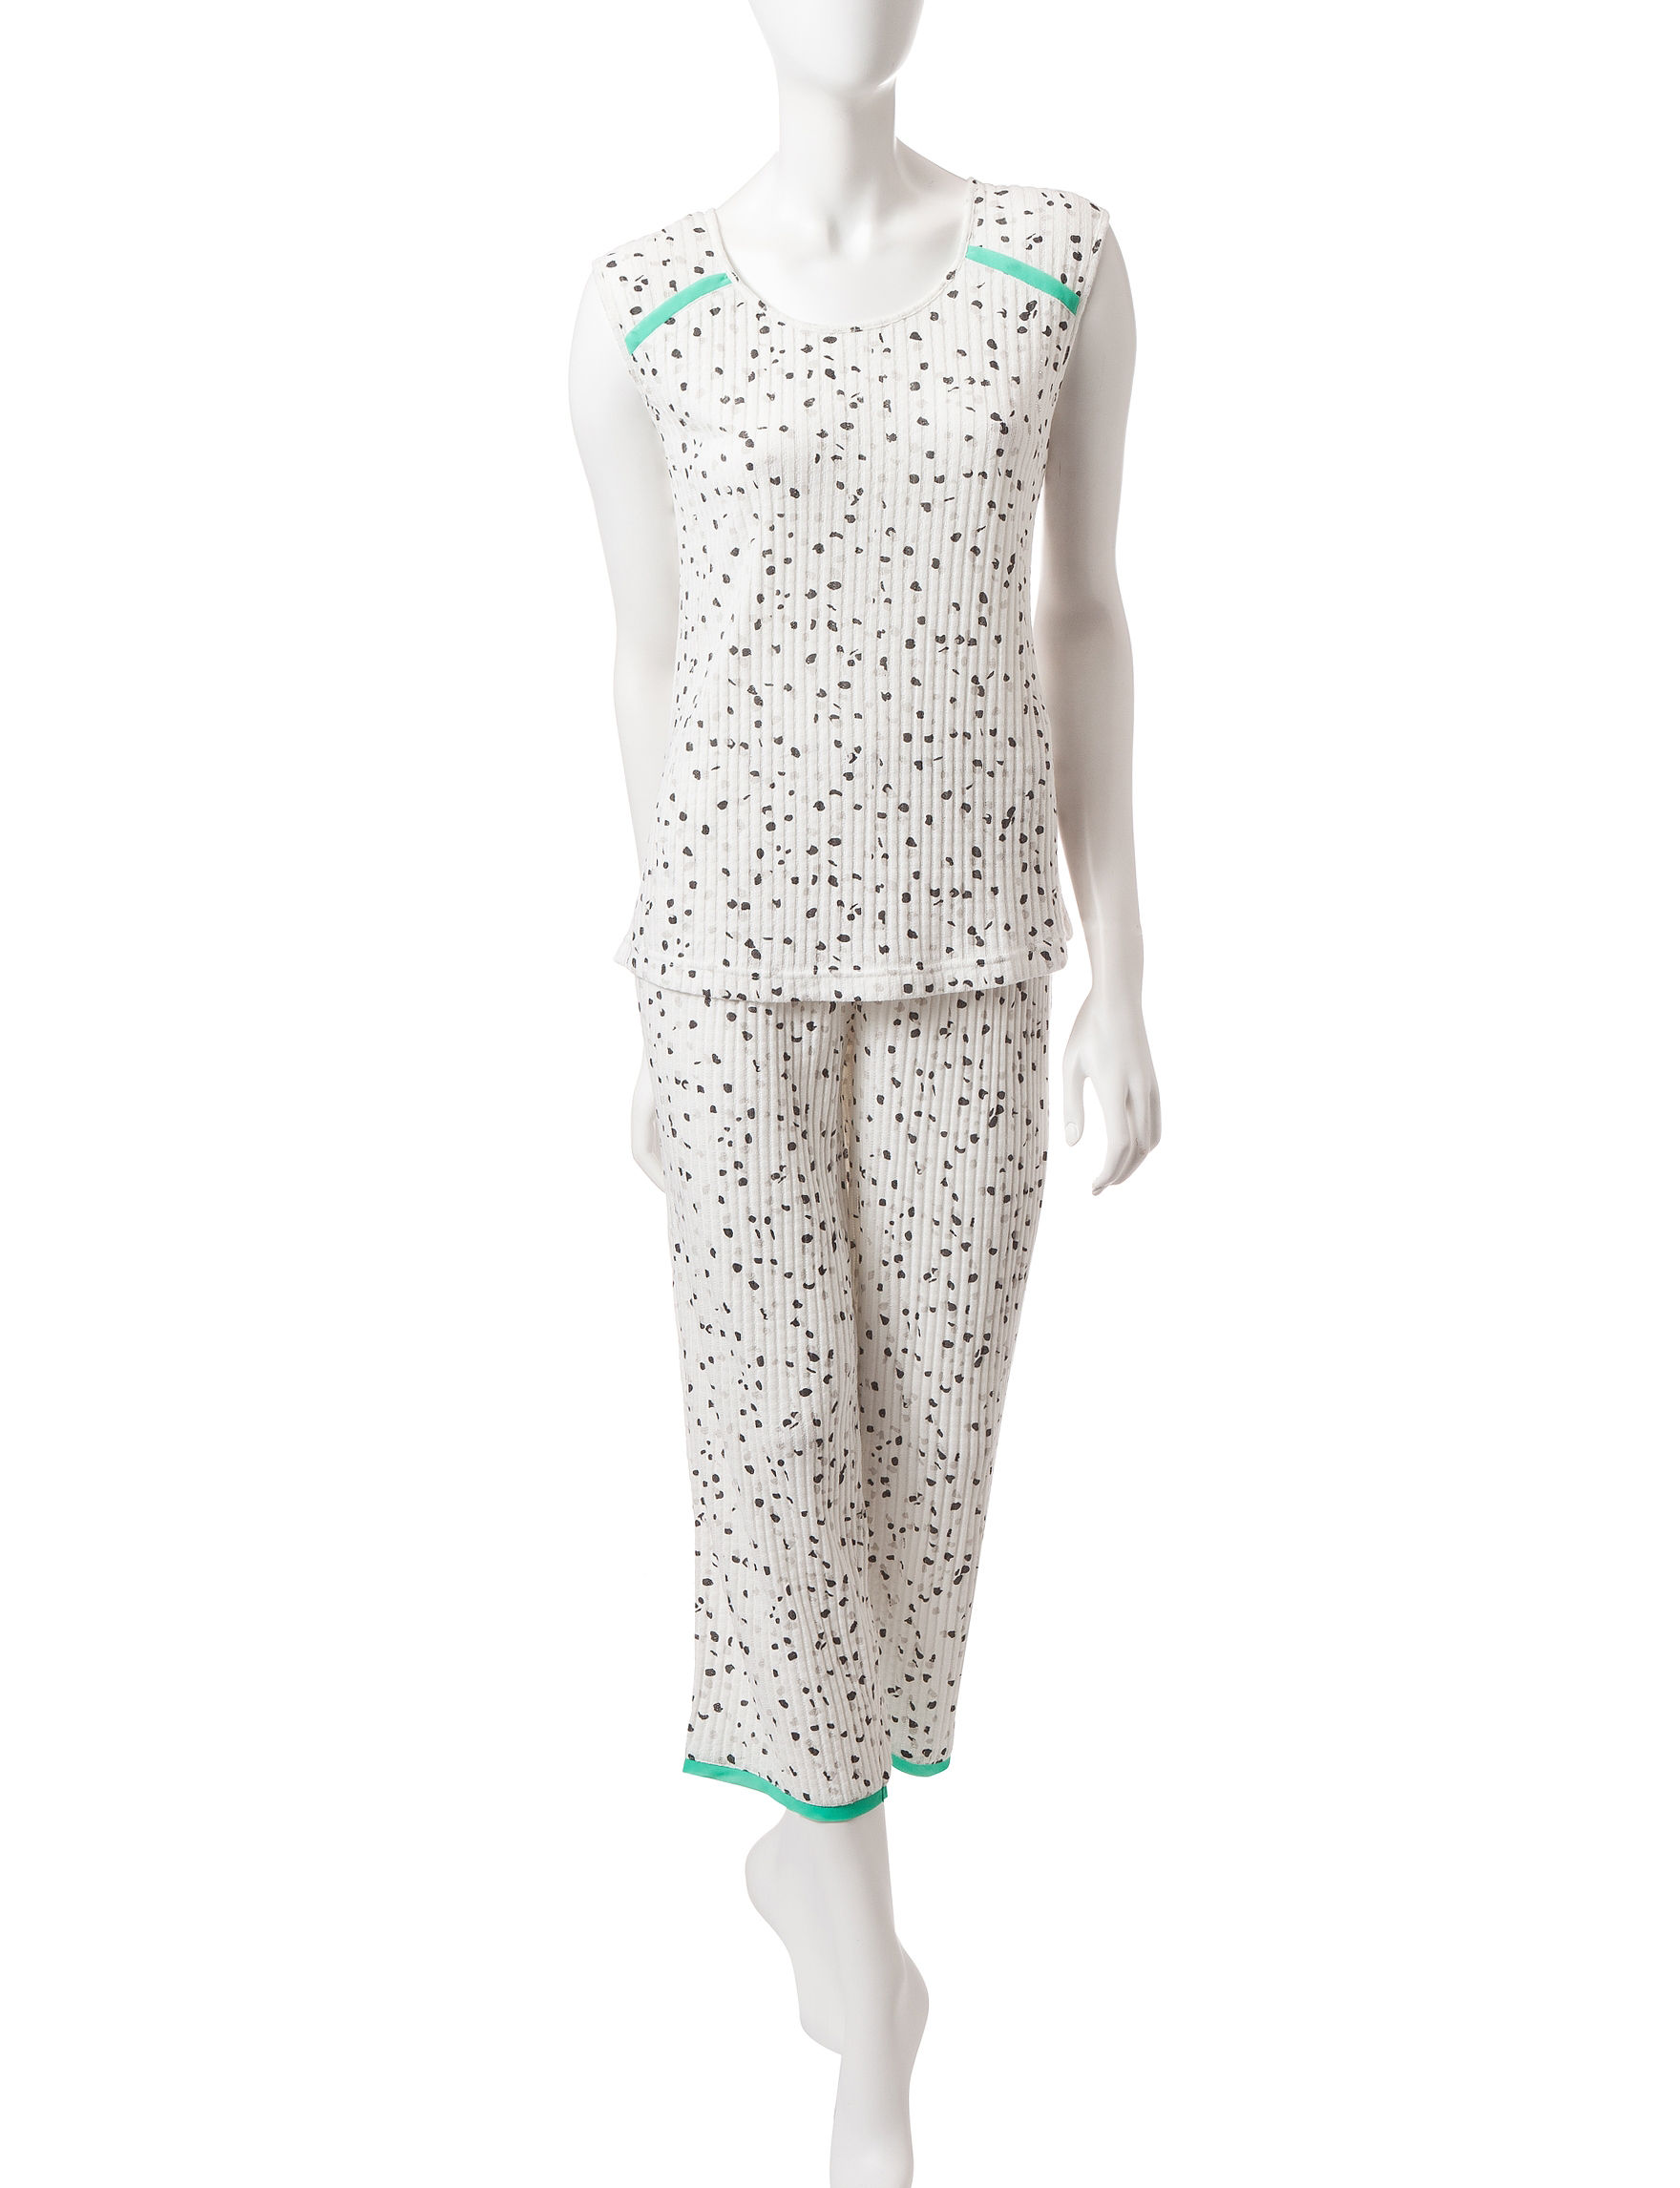 Hanes White Multi Pajama Sets